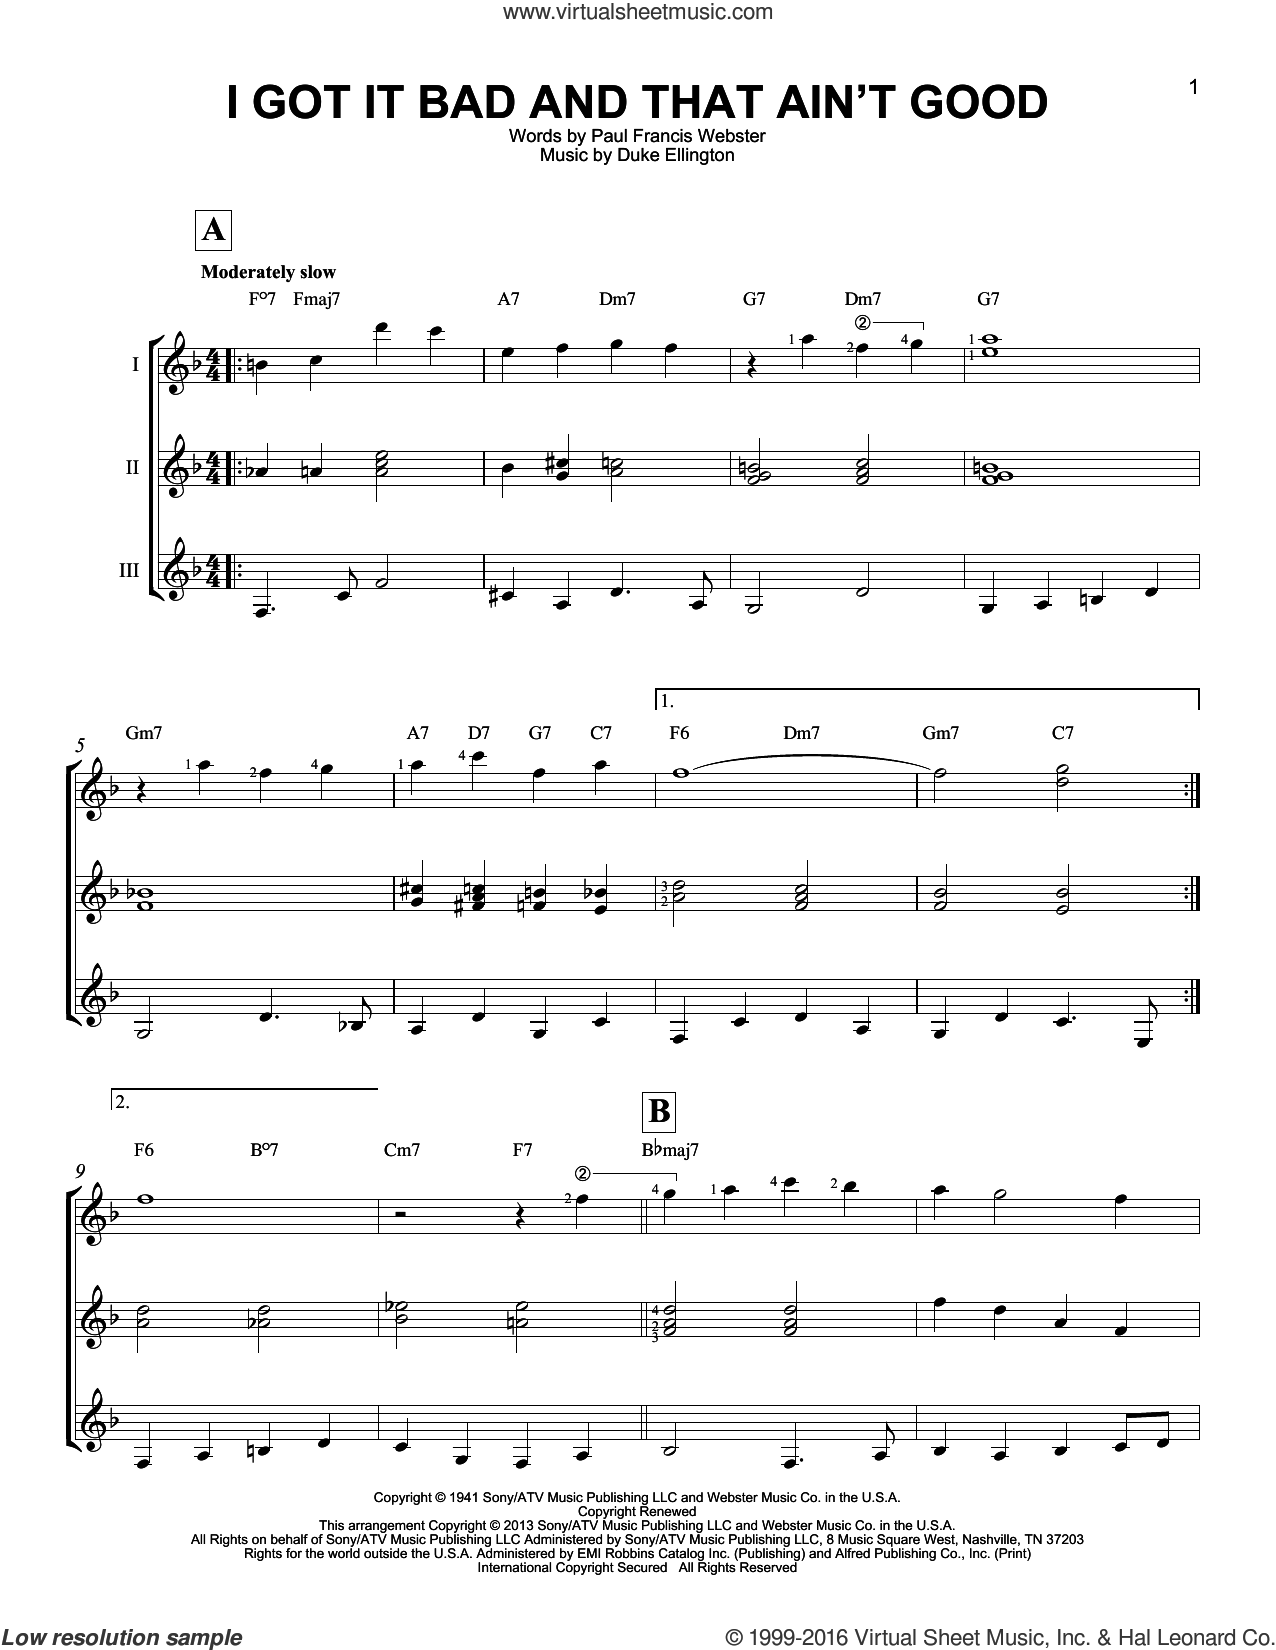 I Got It Bad And That Ain't Good sheet music for guitar ensemble by Paul Francis Webster